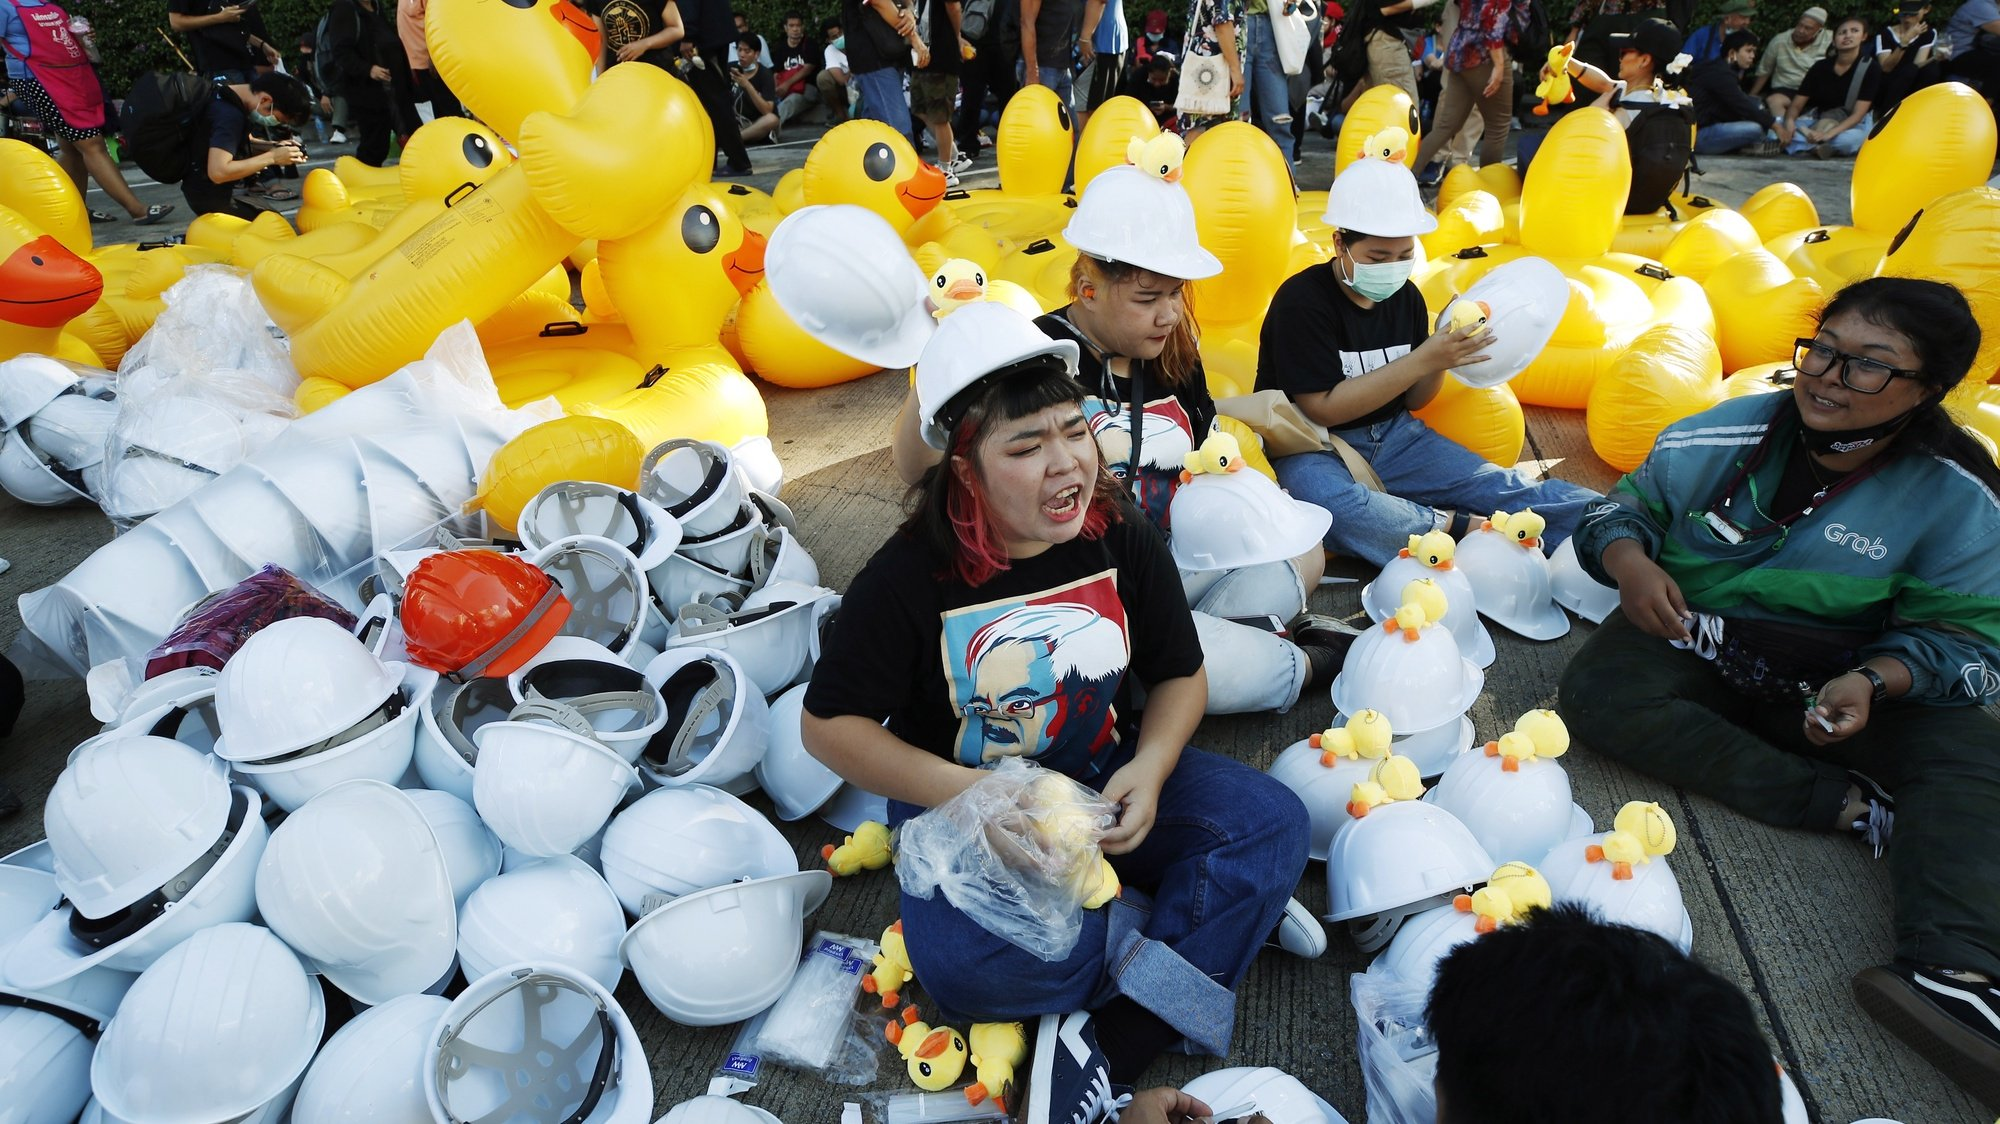 epaselect epa08840410 Protesters glue rubber ducks onto helmets to be distributed to other protesters ahead of an anti-government protest calling for monarchy reform at the Siam Commercial Bank headquarters in Bangkok, Thailand, 25 November 2020. Pro-democracy protesters held a mass rally calling for the monarchy reform and to demand public oversight of the king's assets at the Siam Commercial Bank where Thai King Maha Vajiralongkorn is a major shareholder of the bank.  EPA/DIEGO AZUBEL